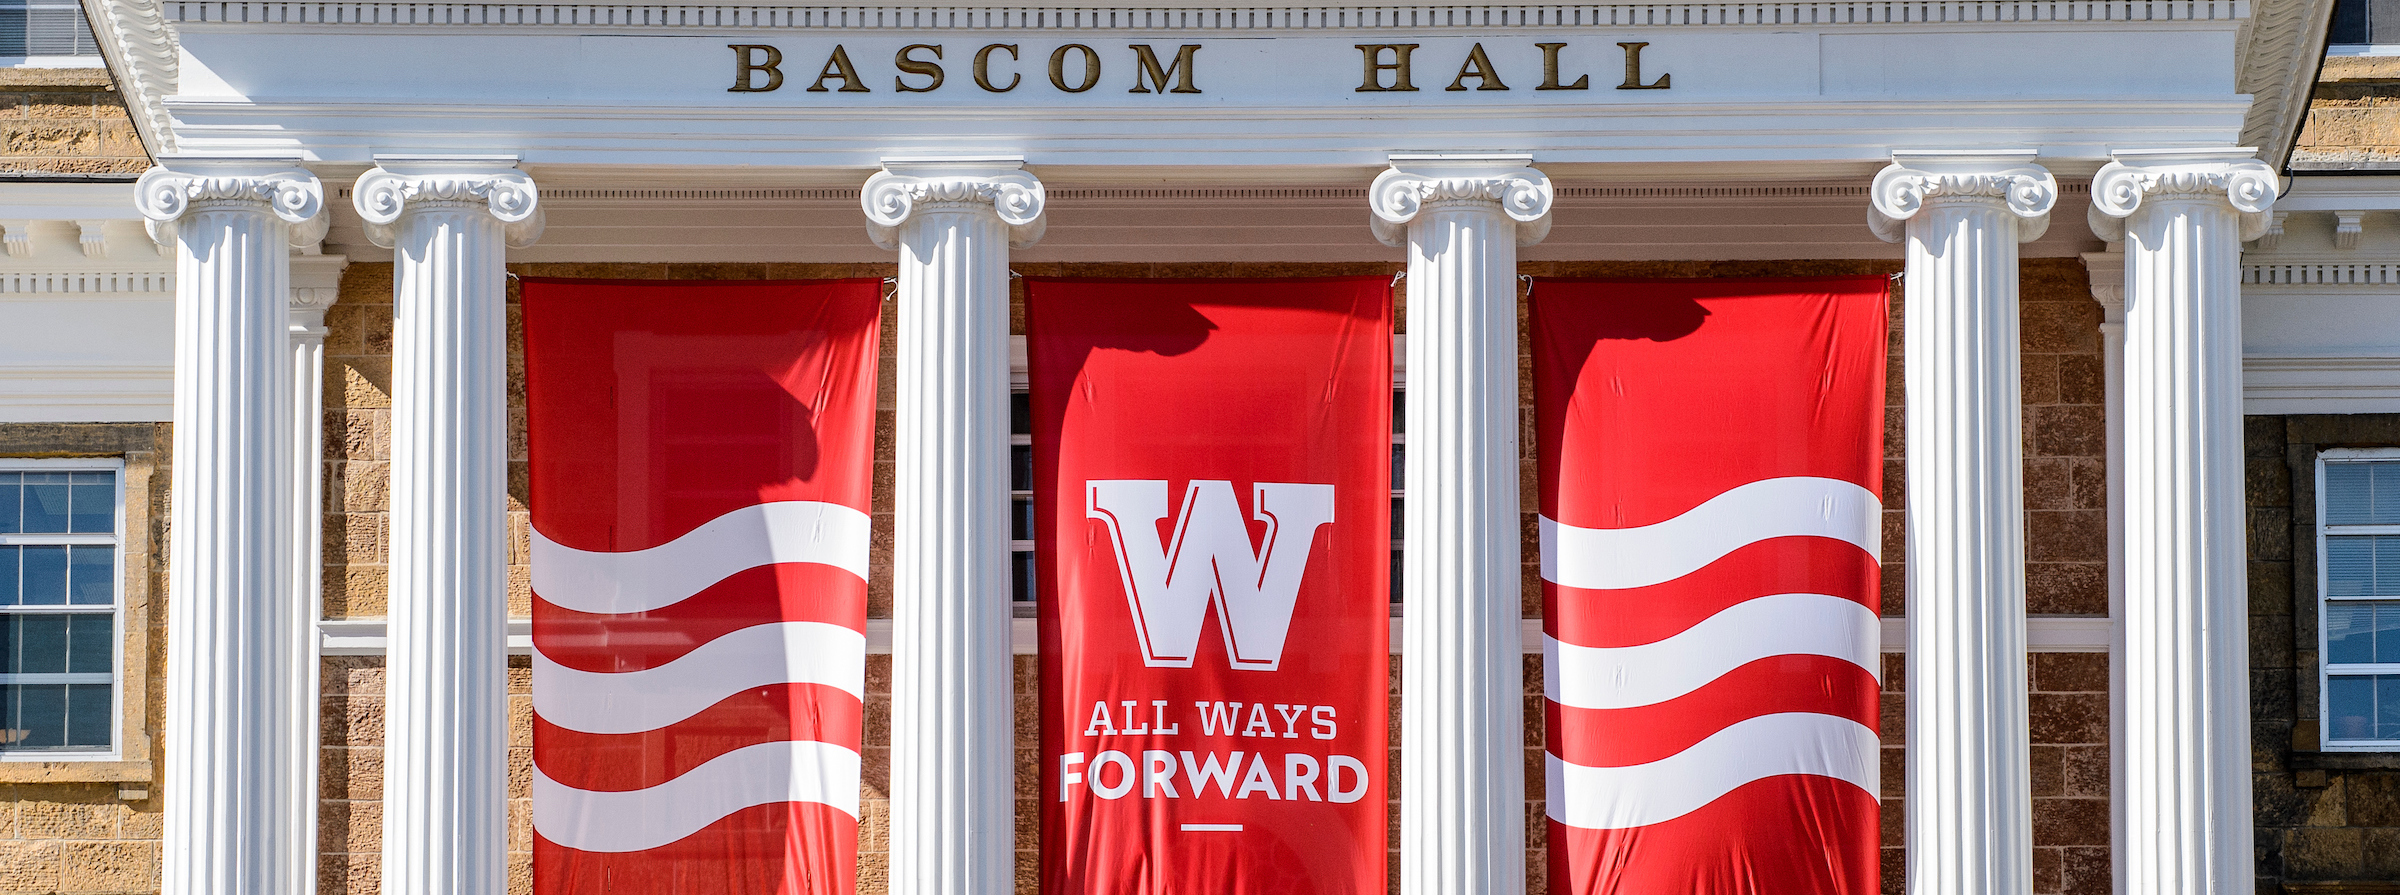 Bascom Hall pillars and banner